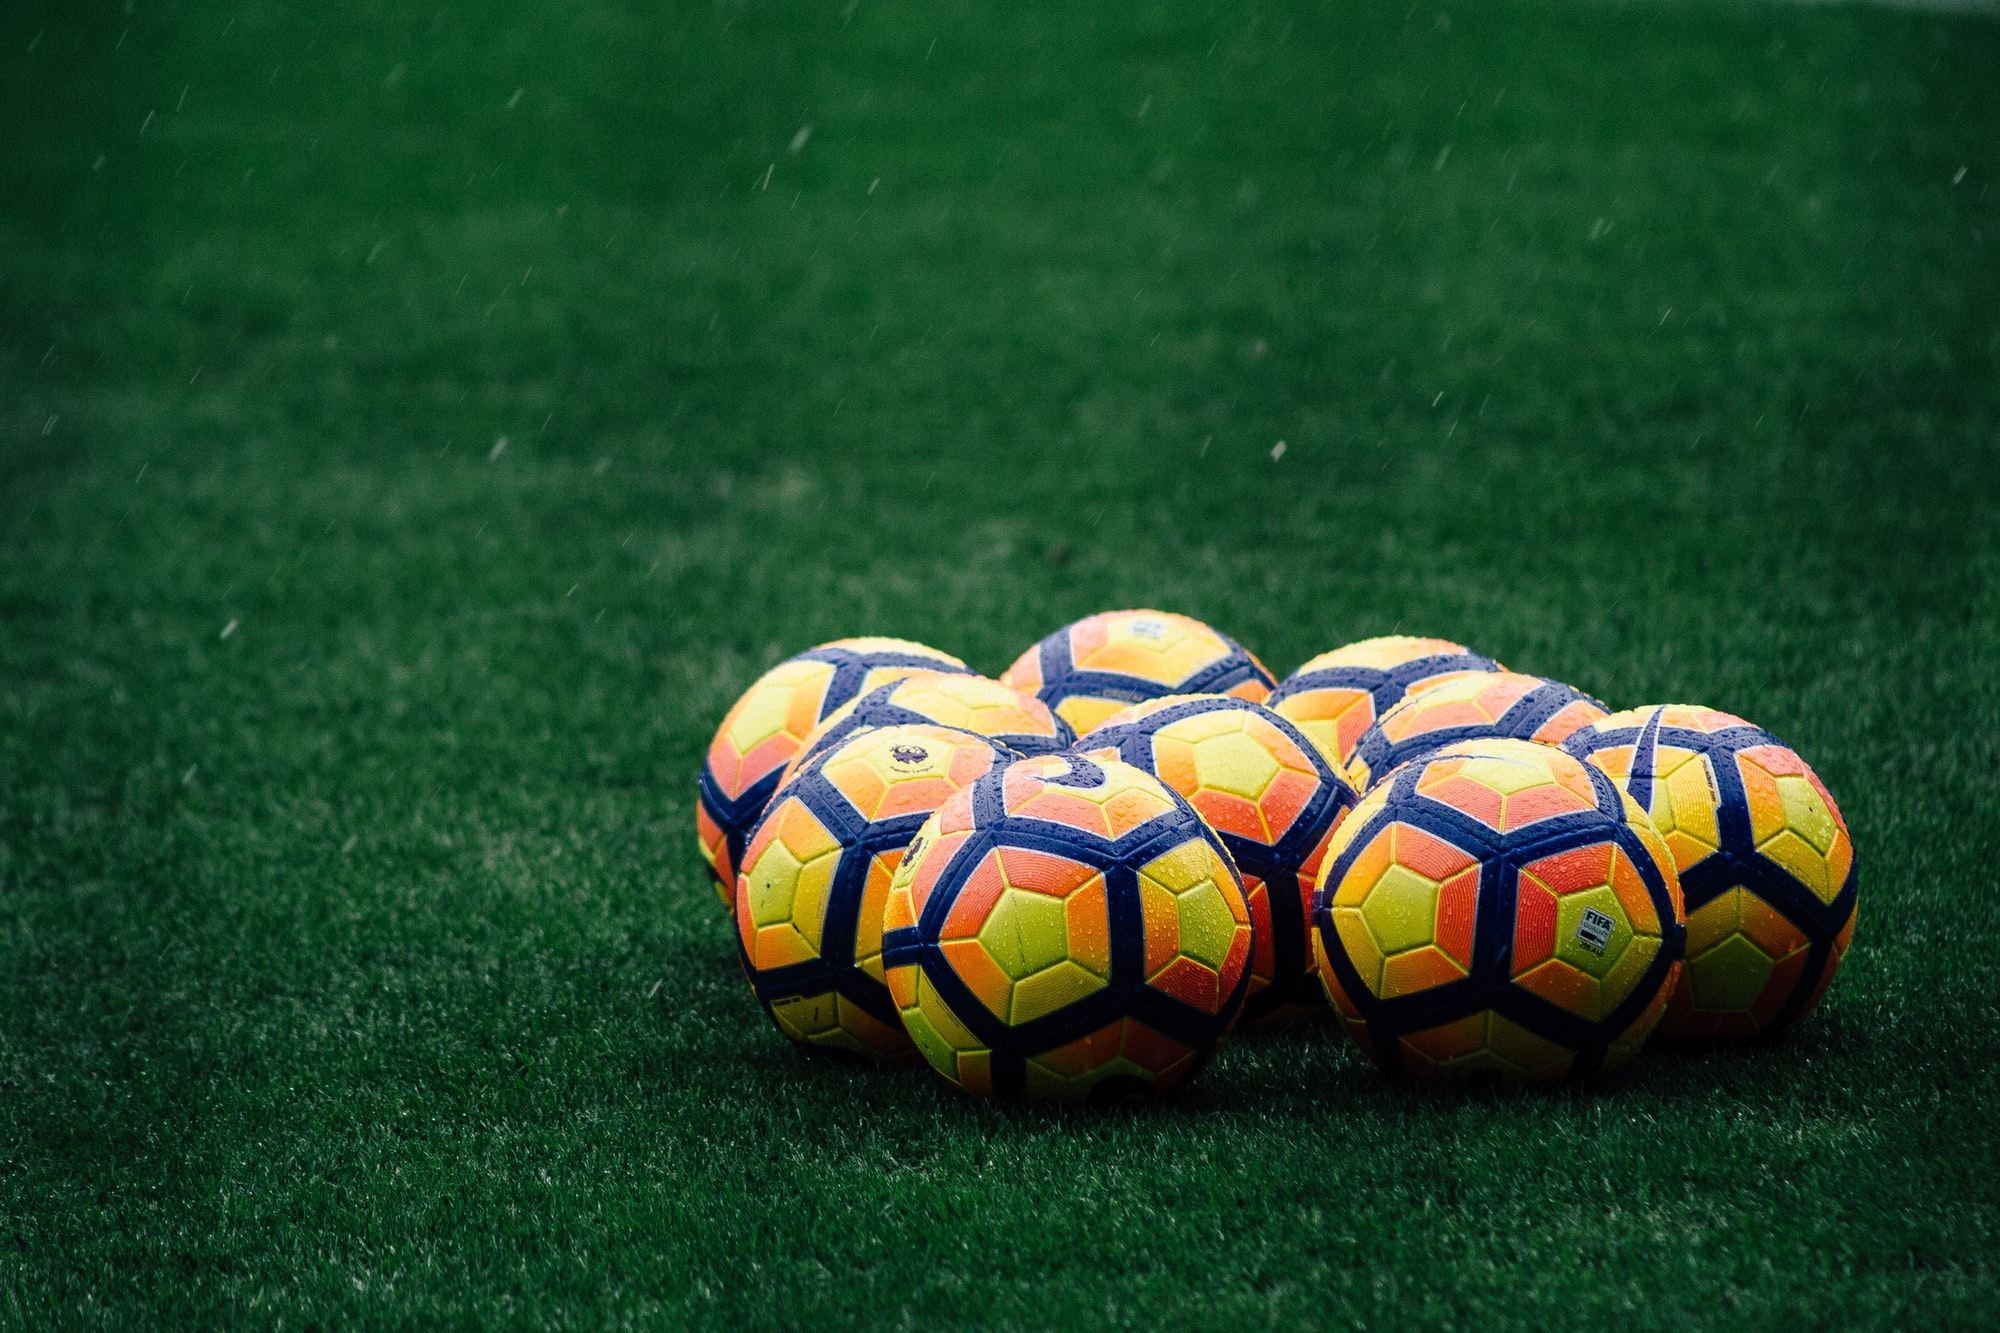 Football for the fans vs Football for the profit: A Question of Sport